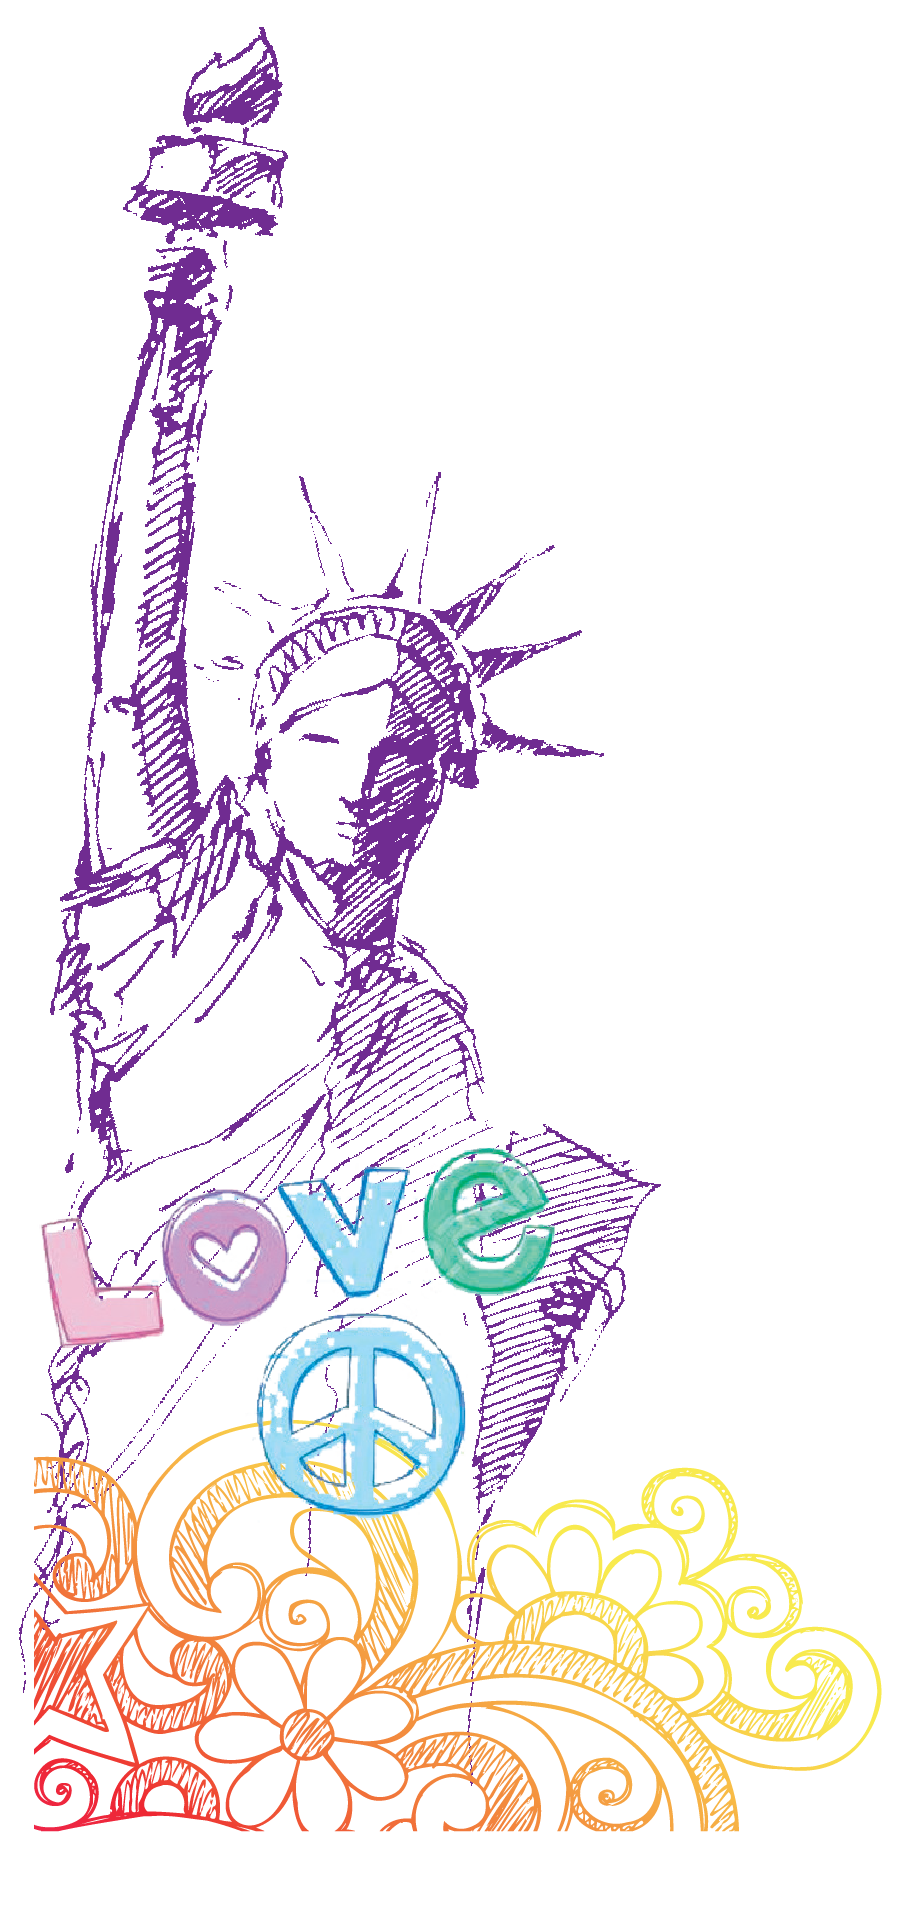 Art_StatueOfLiberty-01.png